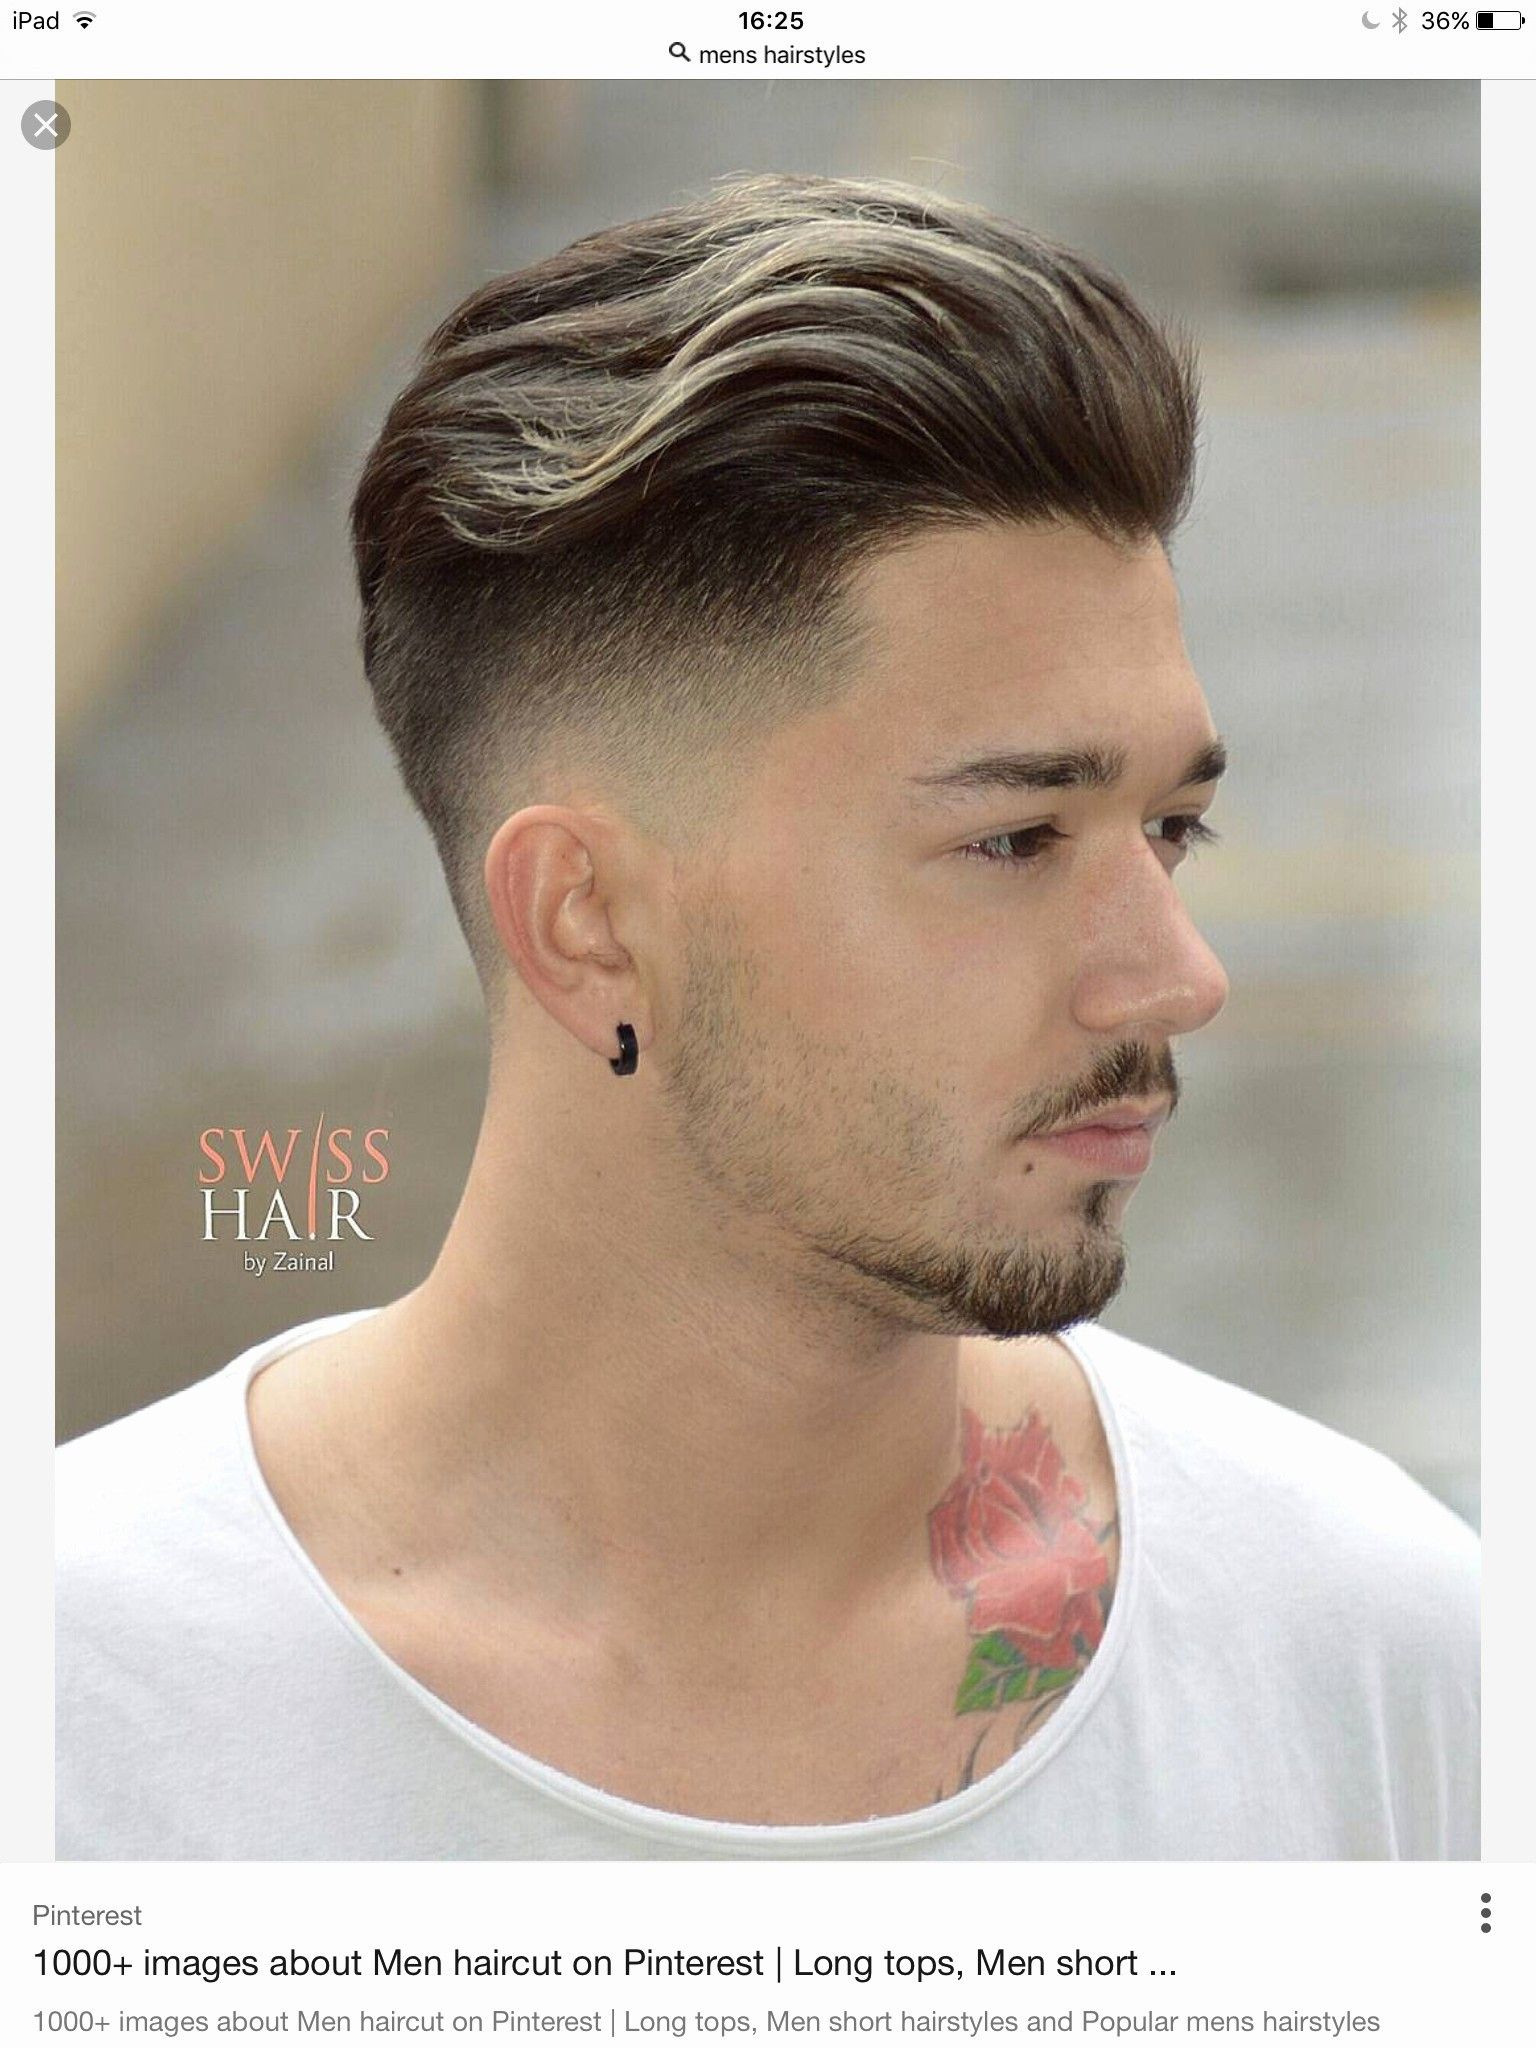 98 Wonderful Most Popular Pinterest Haircuts For Straight Hair Mens Hairstyles Short Long Hair Styles Men Thick Hair Styles